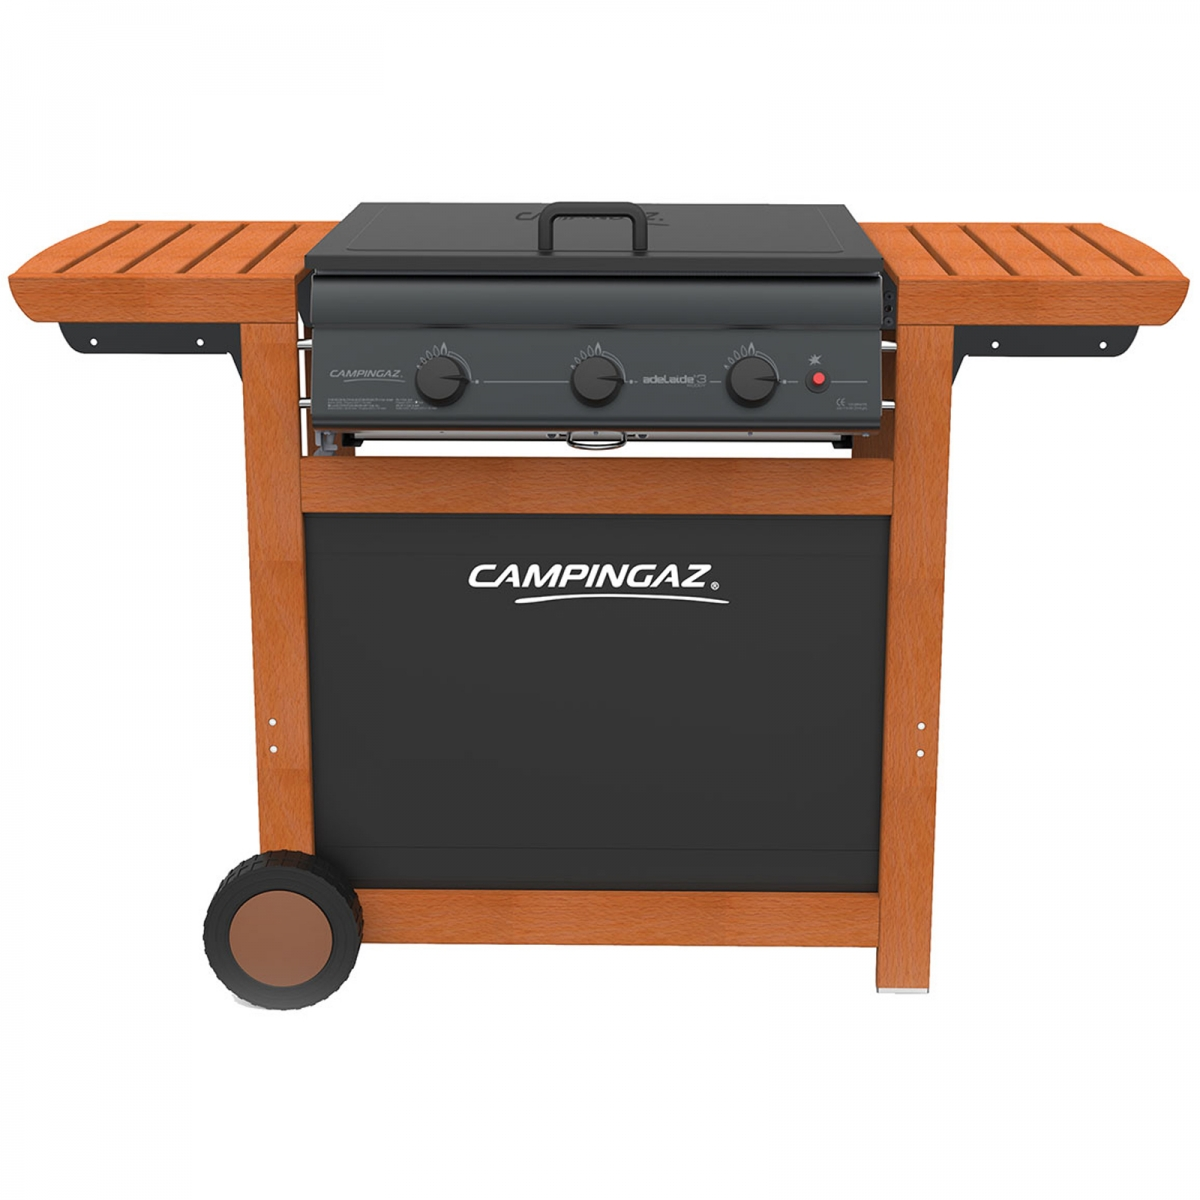 campingaz adelaide 3 woody barbecue a gas il mondo del barbecue. Black Bedroom Furniture Sets. Home Design Ideas